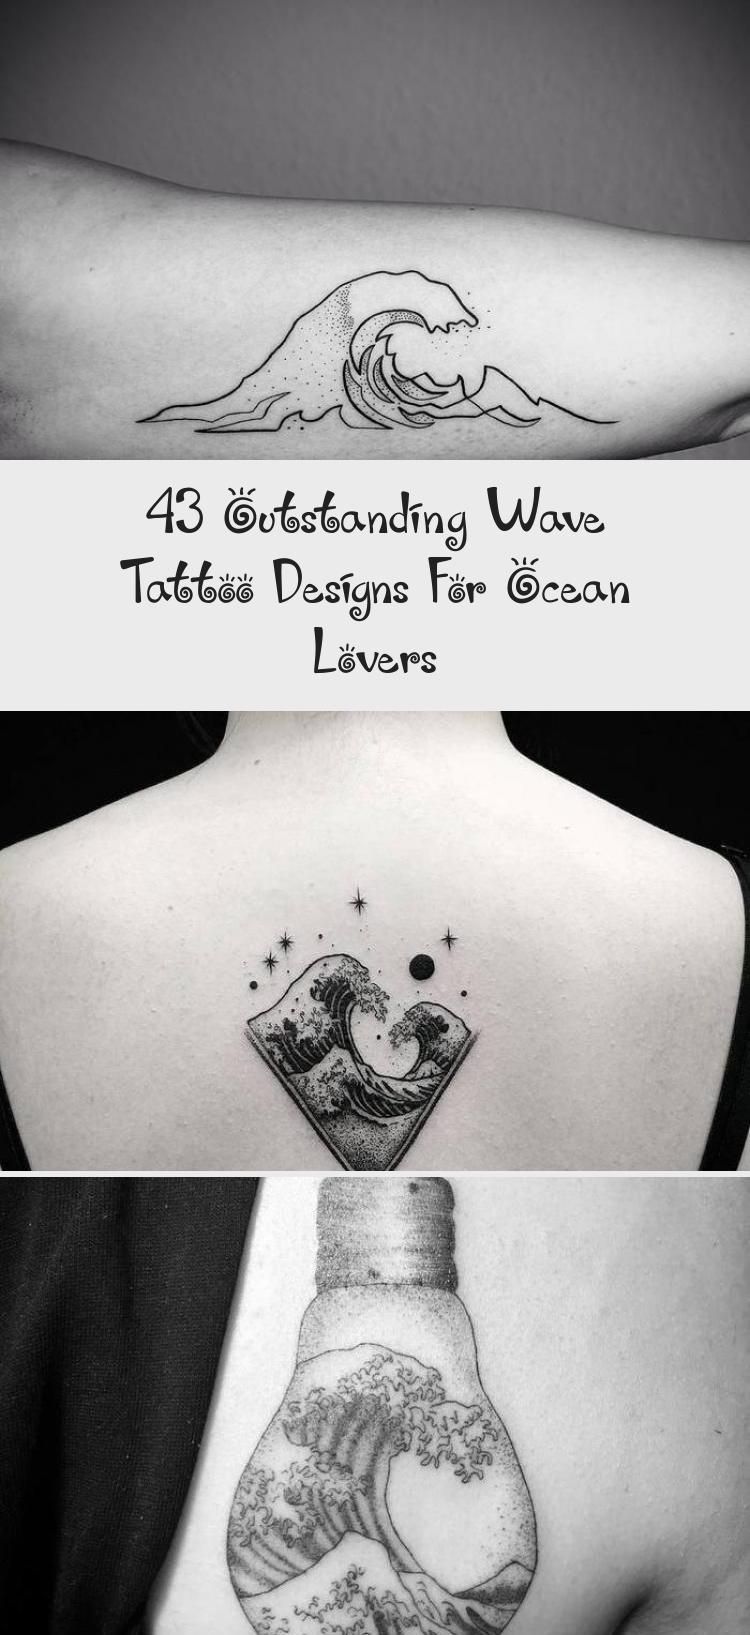 Photo of 43 Outstanding Wave Tattoo Designs For Ocean Lovers – Body Art Tattoo